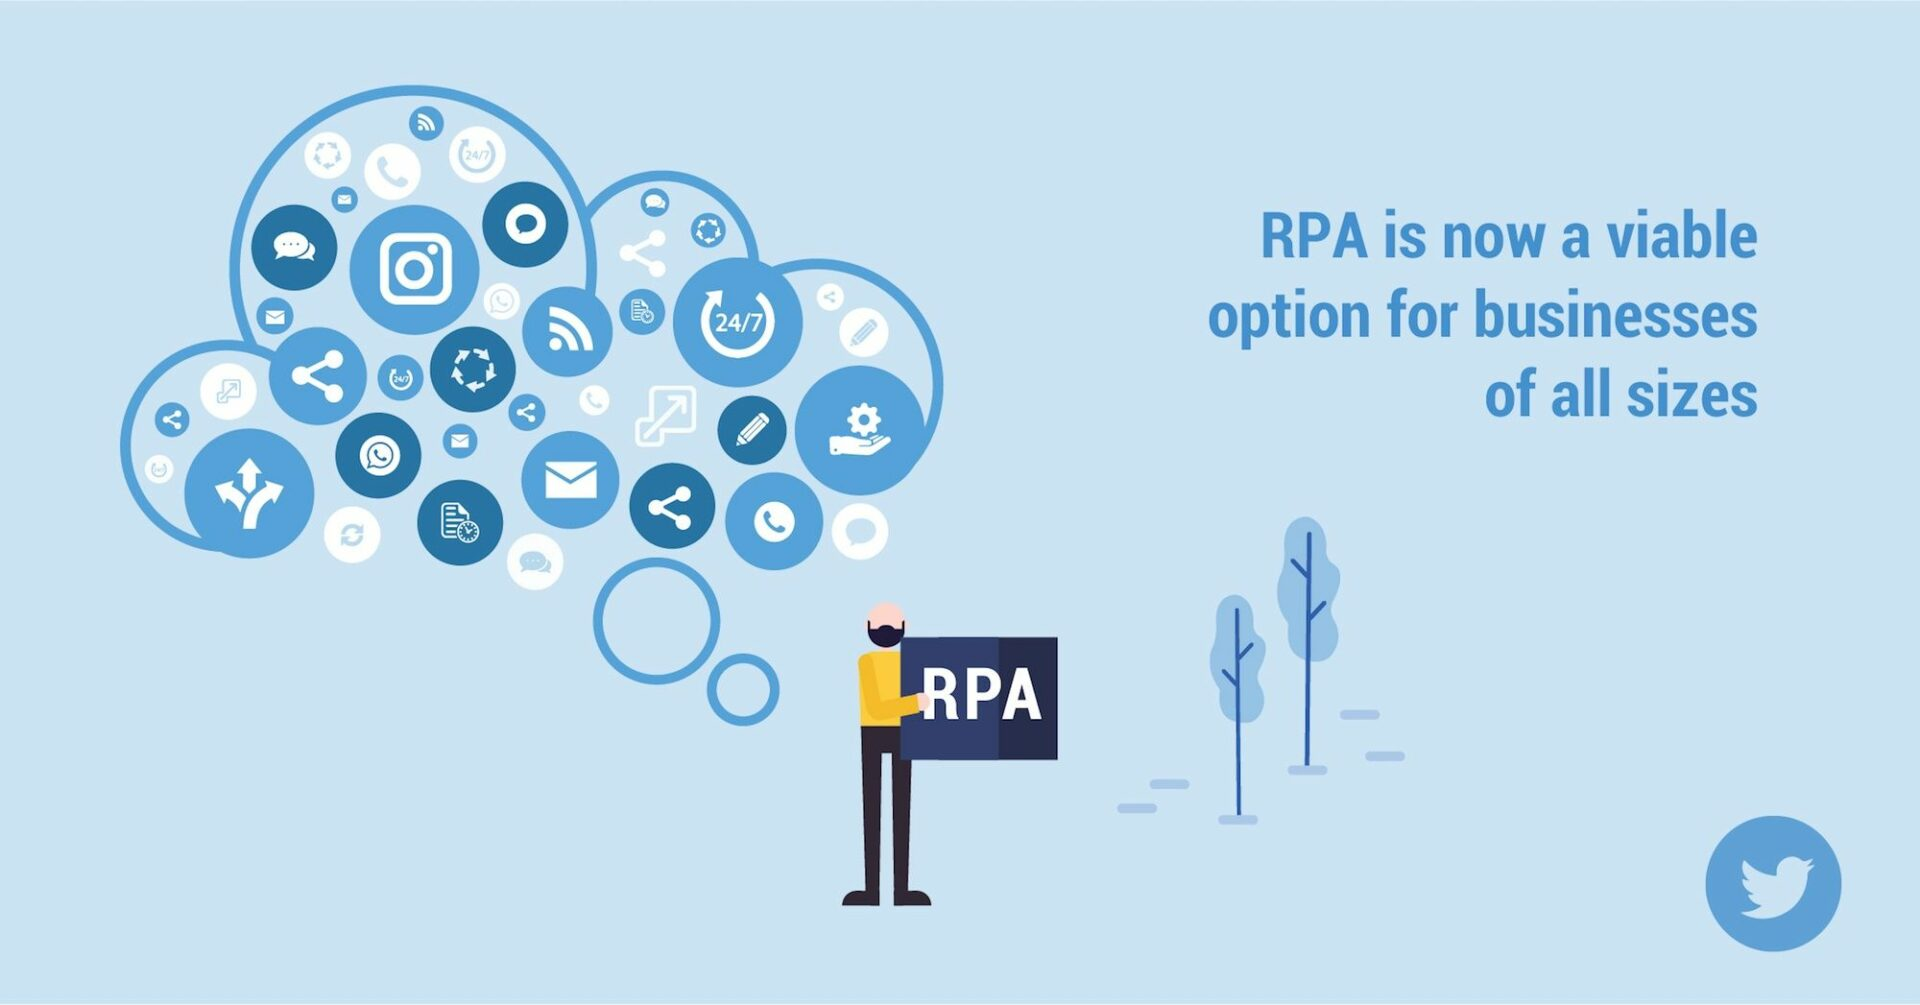 RPA is now a viable option for businesses of all sizes